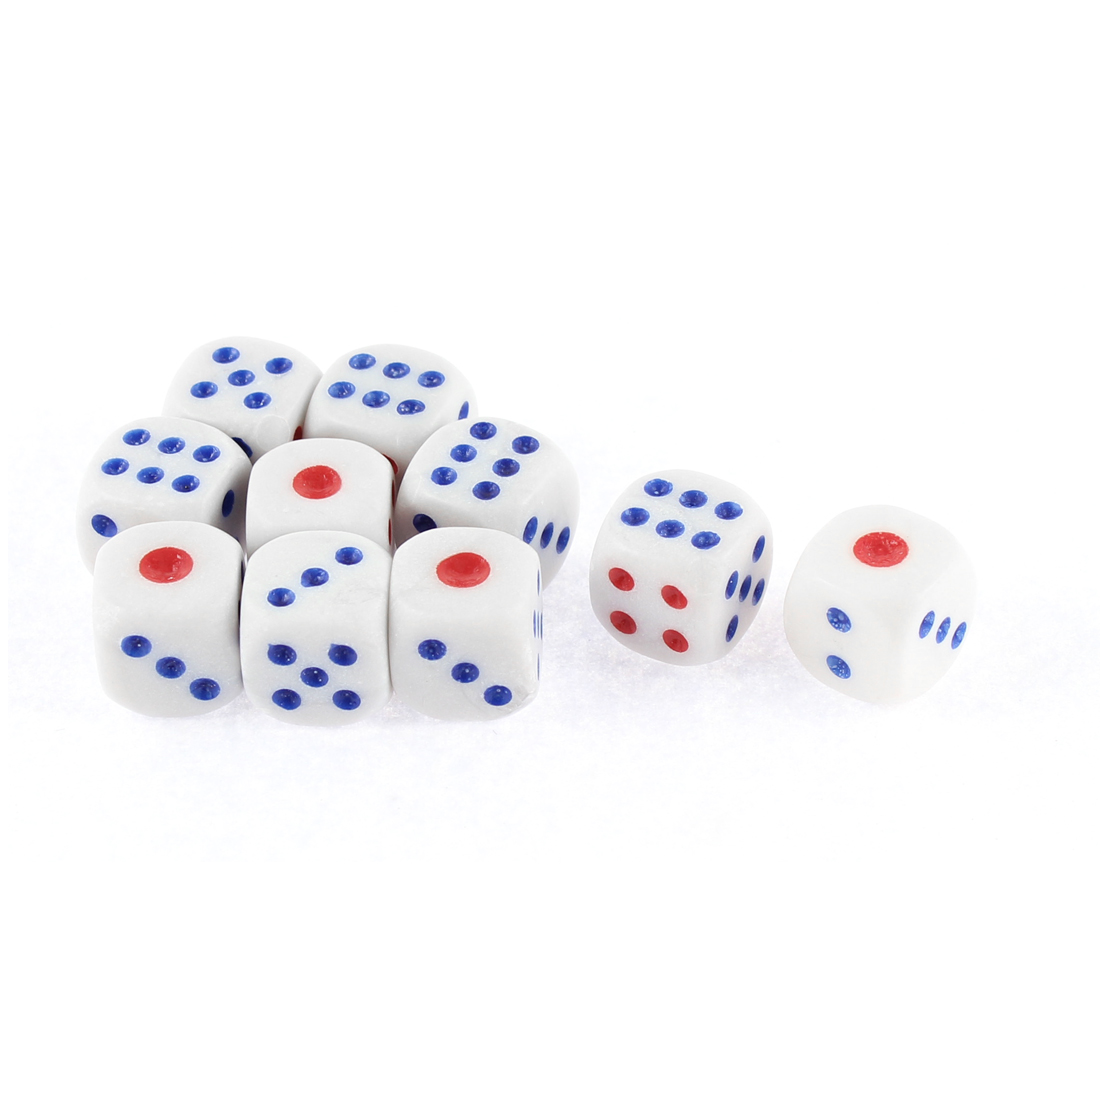 10 Pcs Entertainment Guessing Game Cubical Red Blue Dot Dices Toy